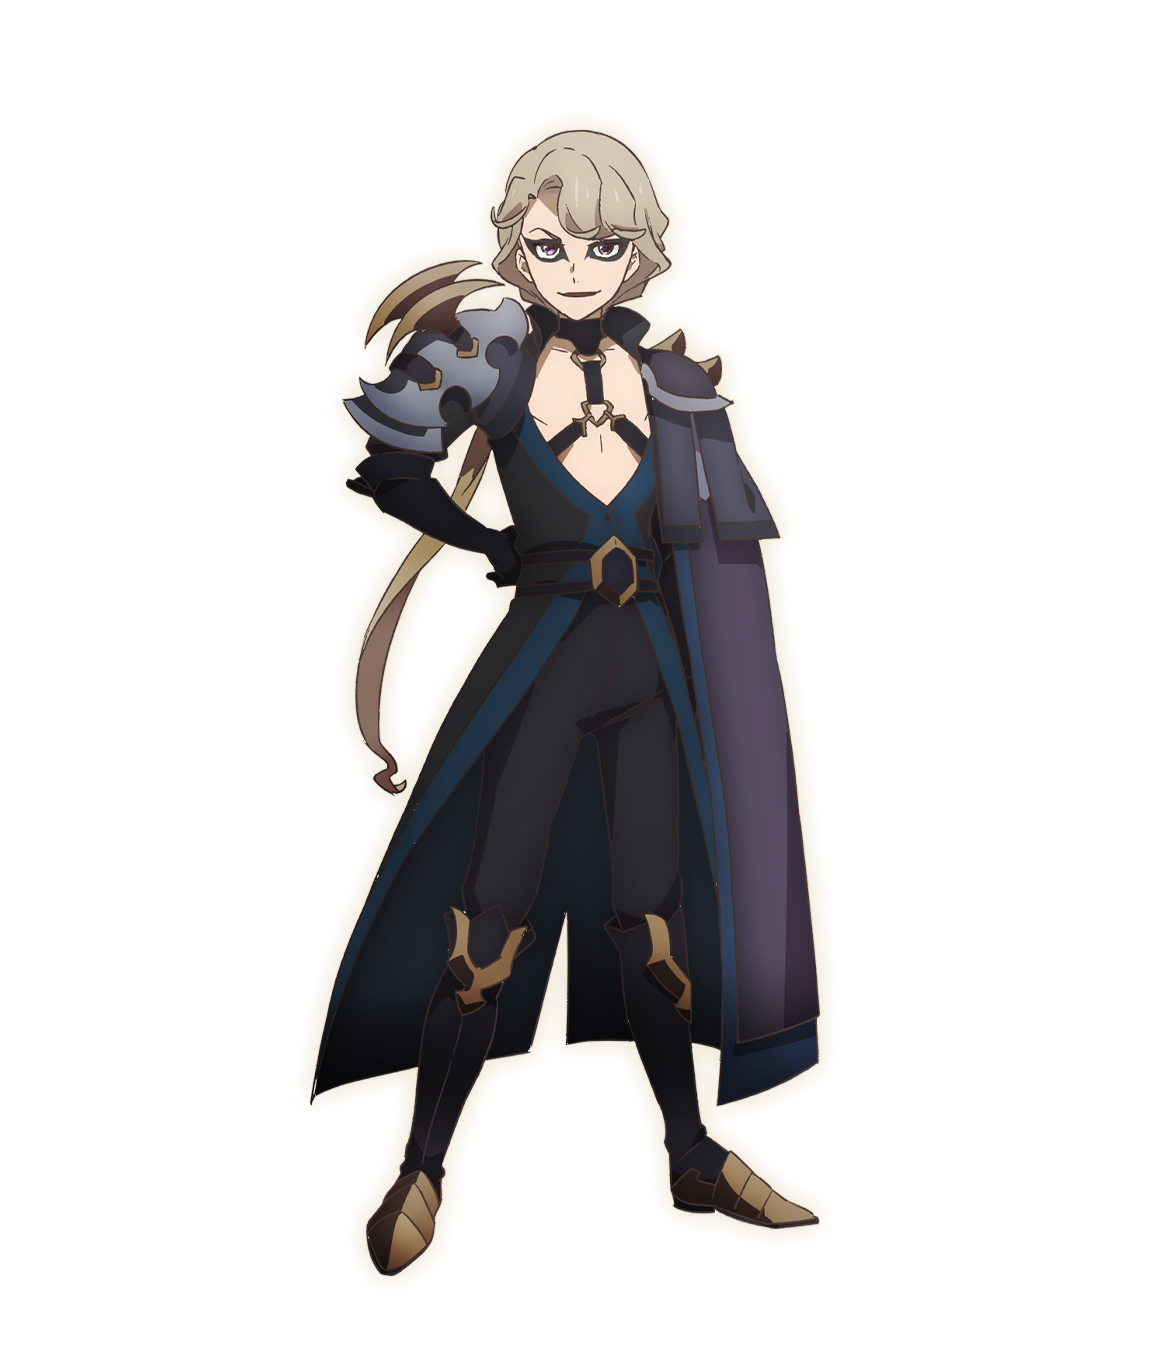 A character setting of Volux from the SEVEN KNIGHTS REVOLUTION: Hero Successor TV anime. Volux appears as a young man in revealing sorcerous armor and a dark cloak. Volux sports his hair in a single long braid and has dark eye-liner outlining his eyes and a cruel expression.